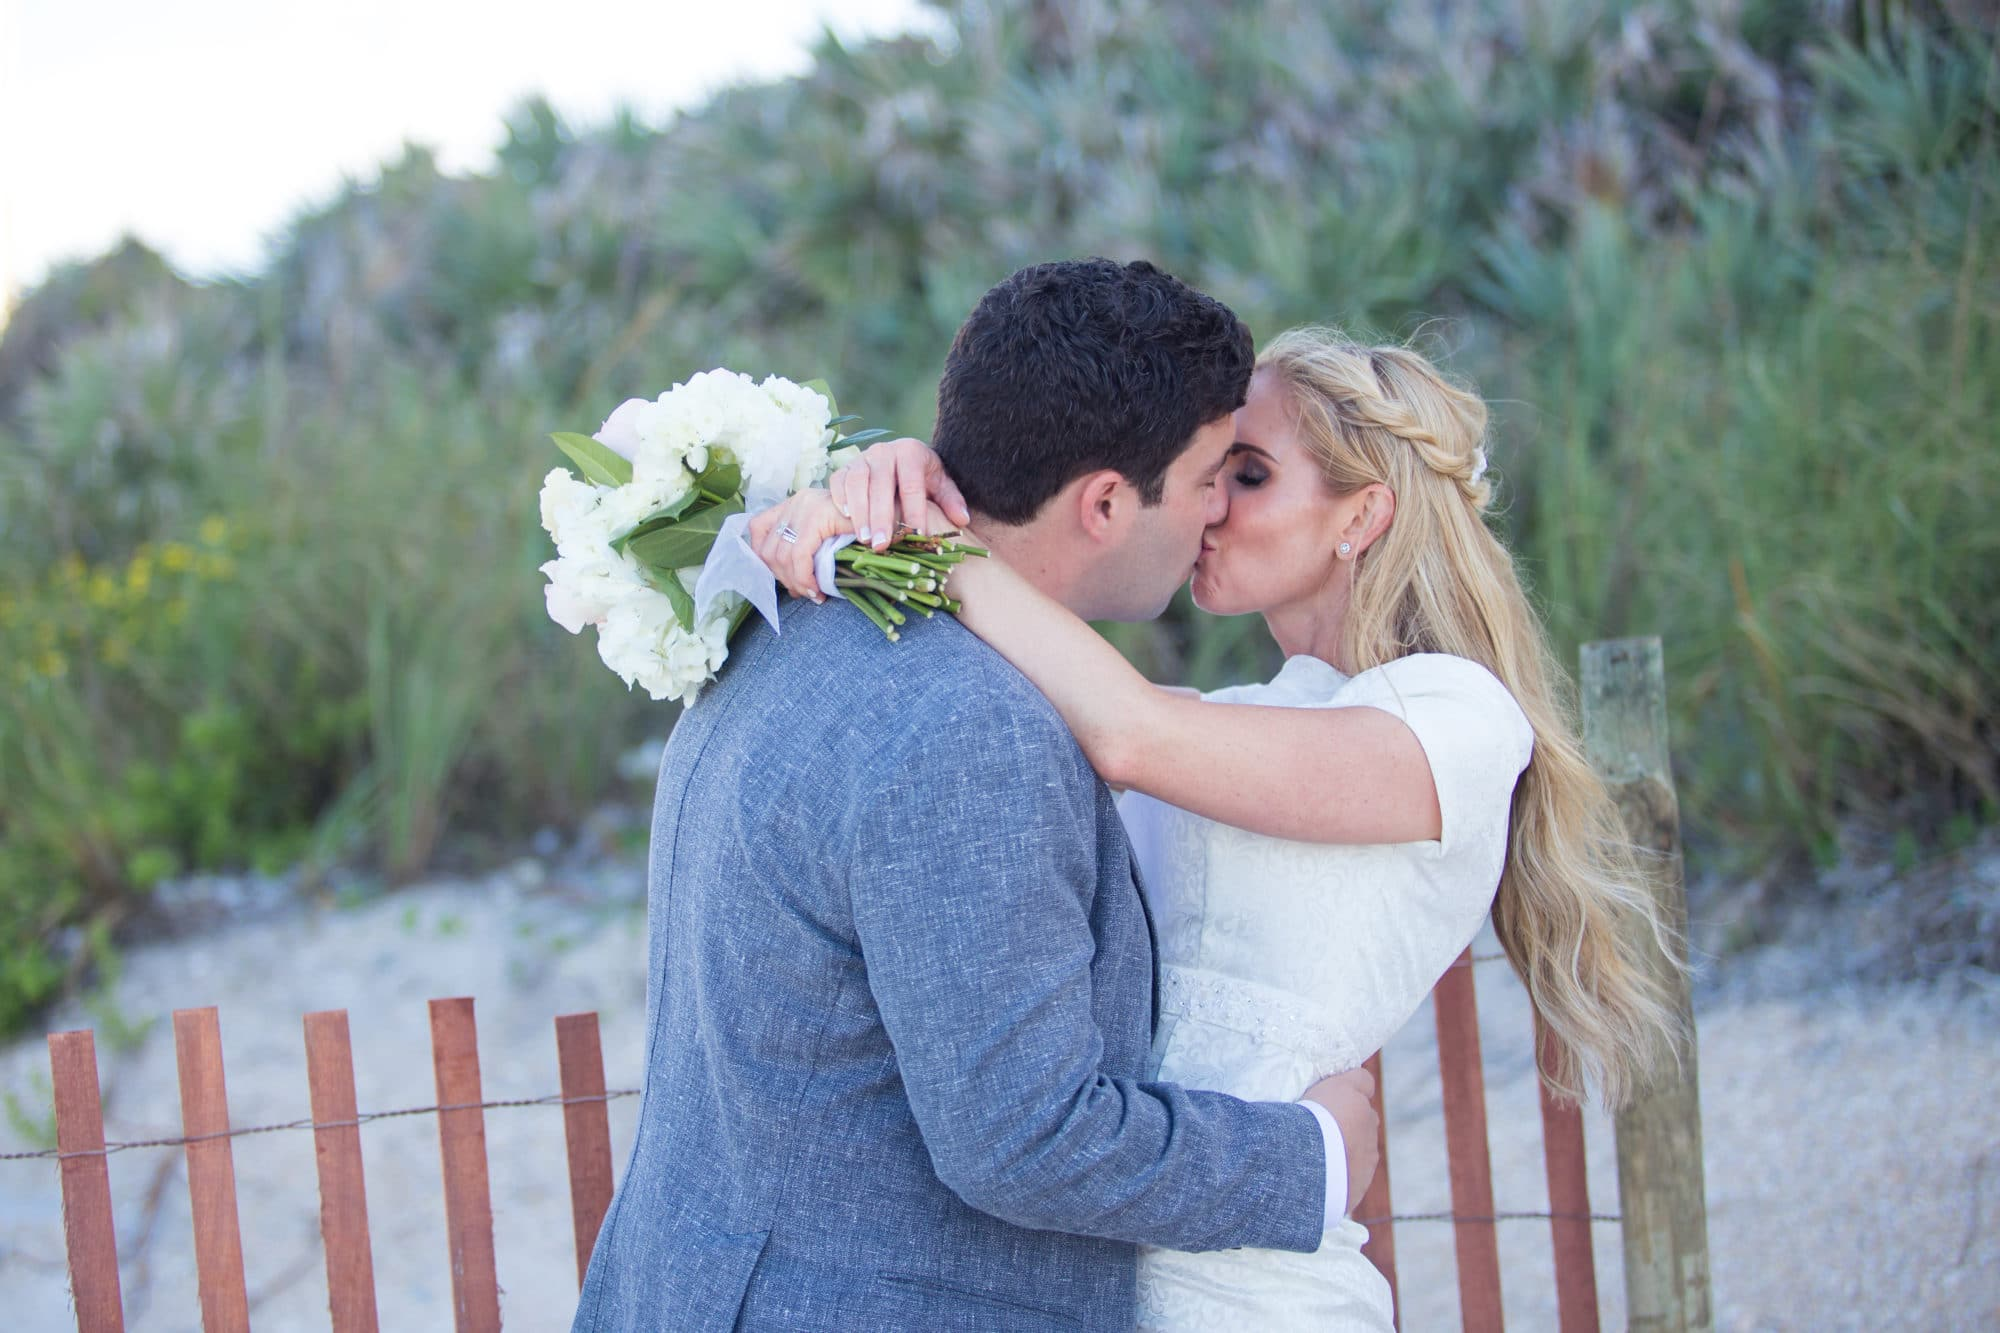 Wedding photography in new Smyrna beach fl